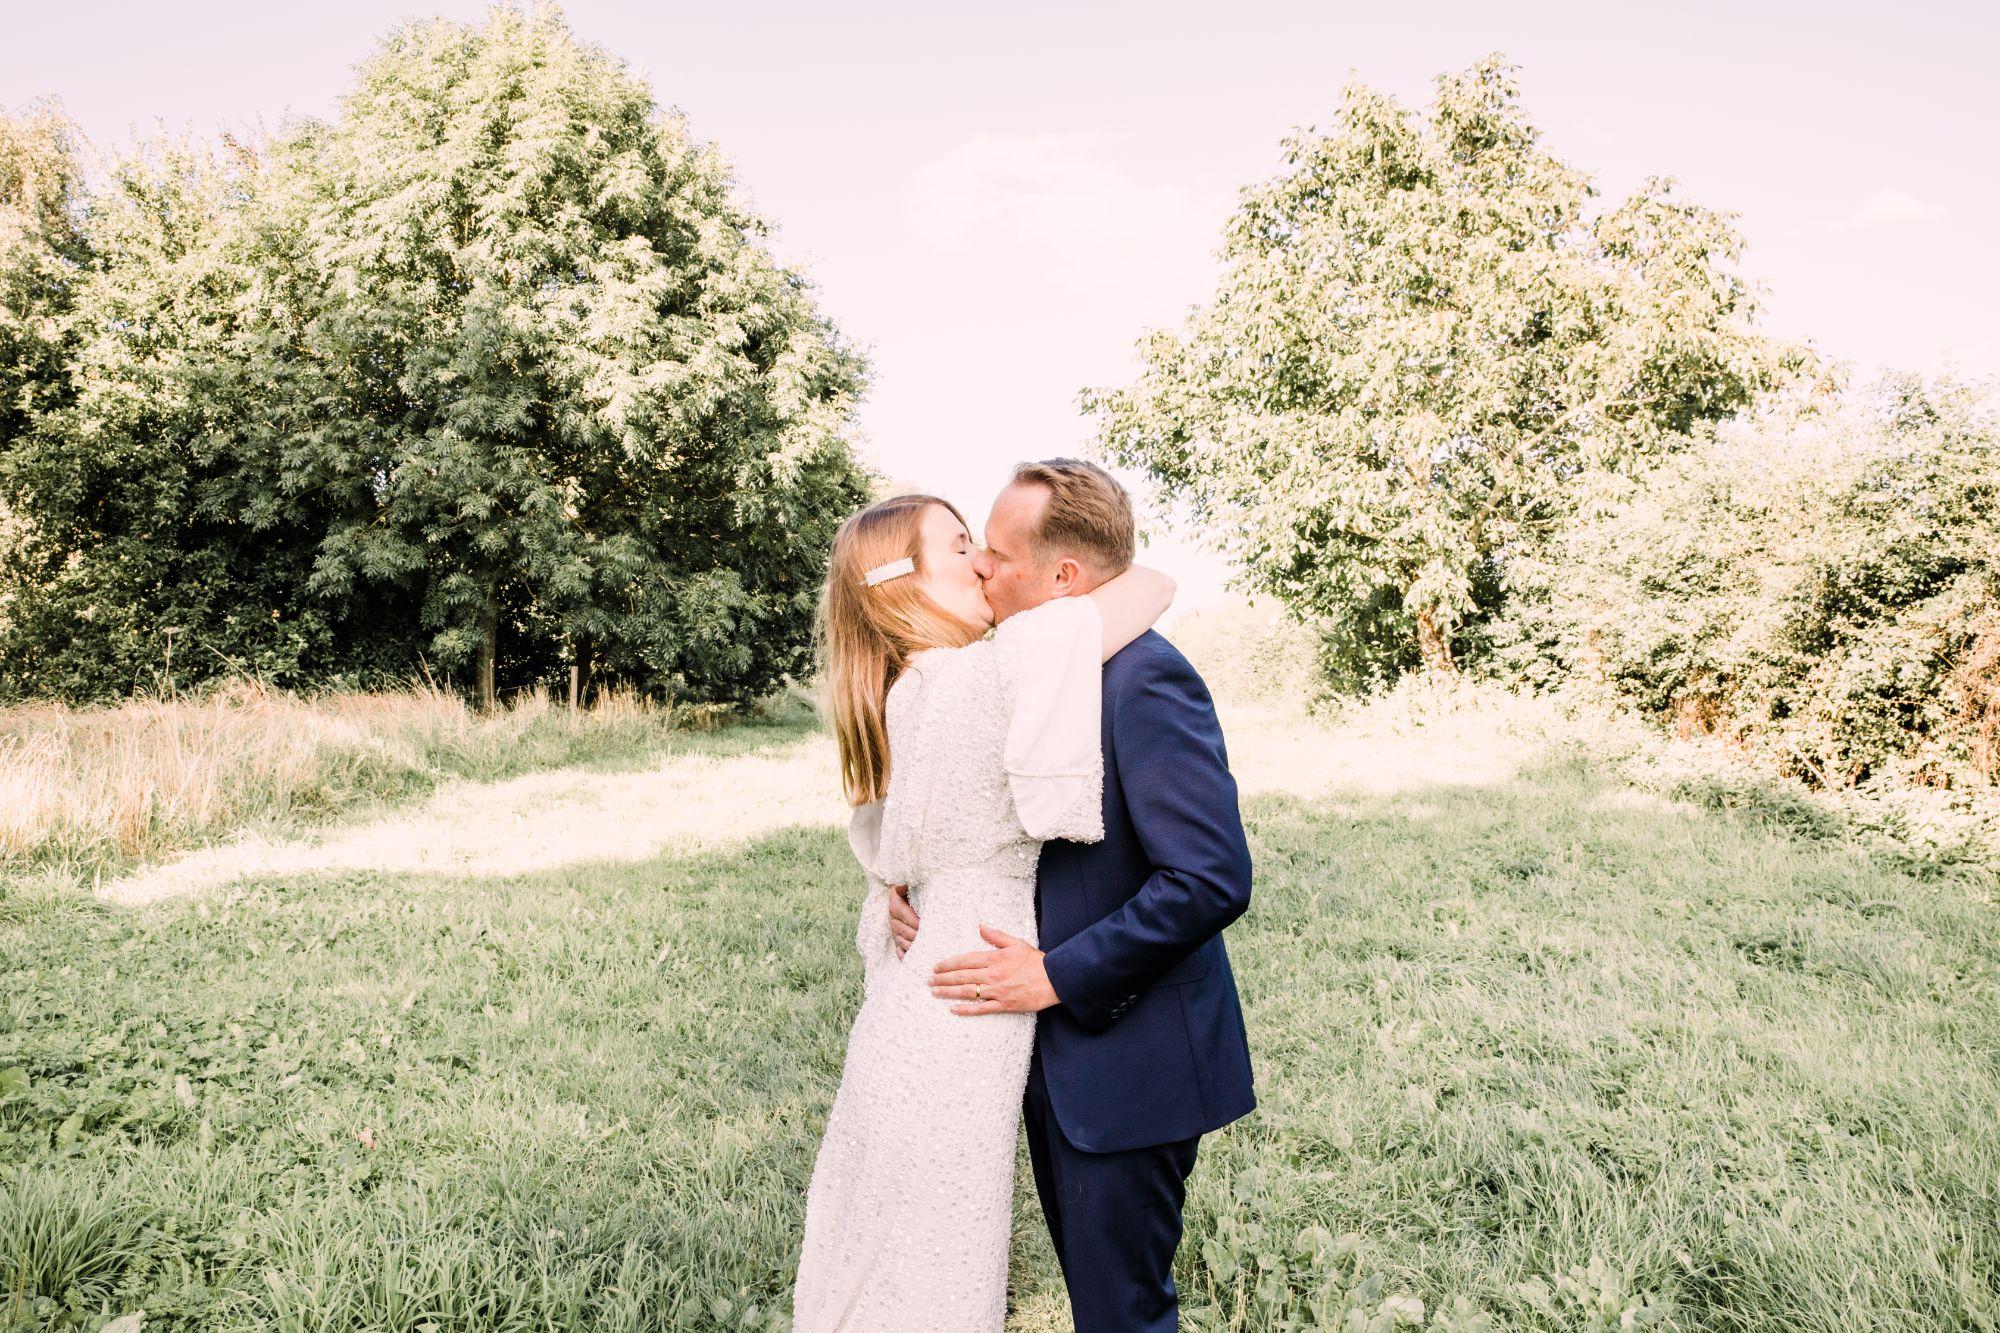 natural romantic wedding photographer staffordshire and the midlands